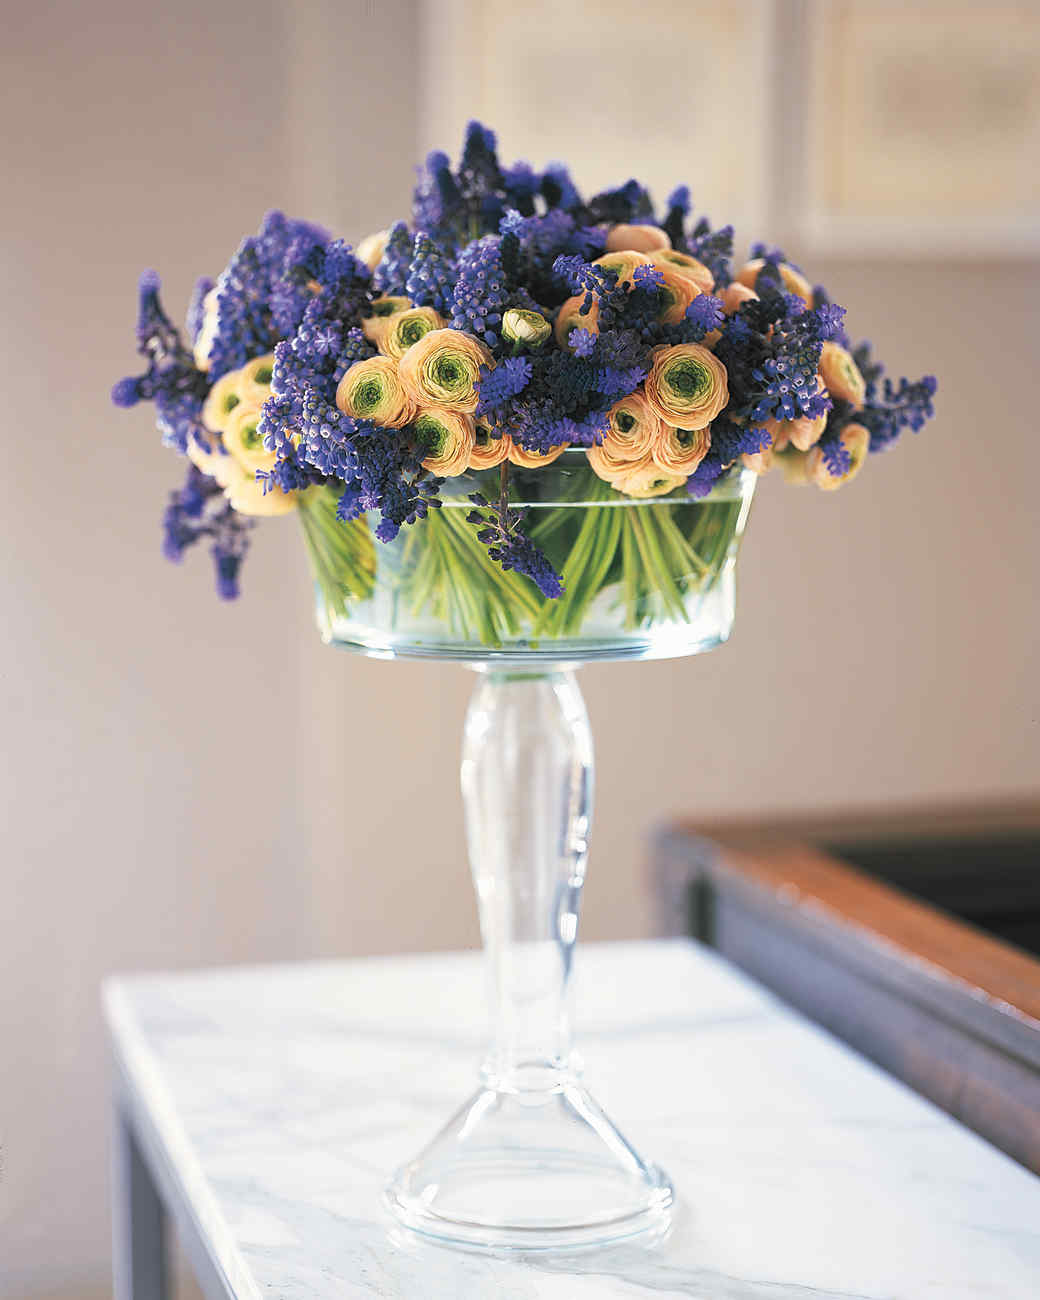 Garden Flowers in Glass Compote